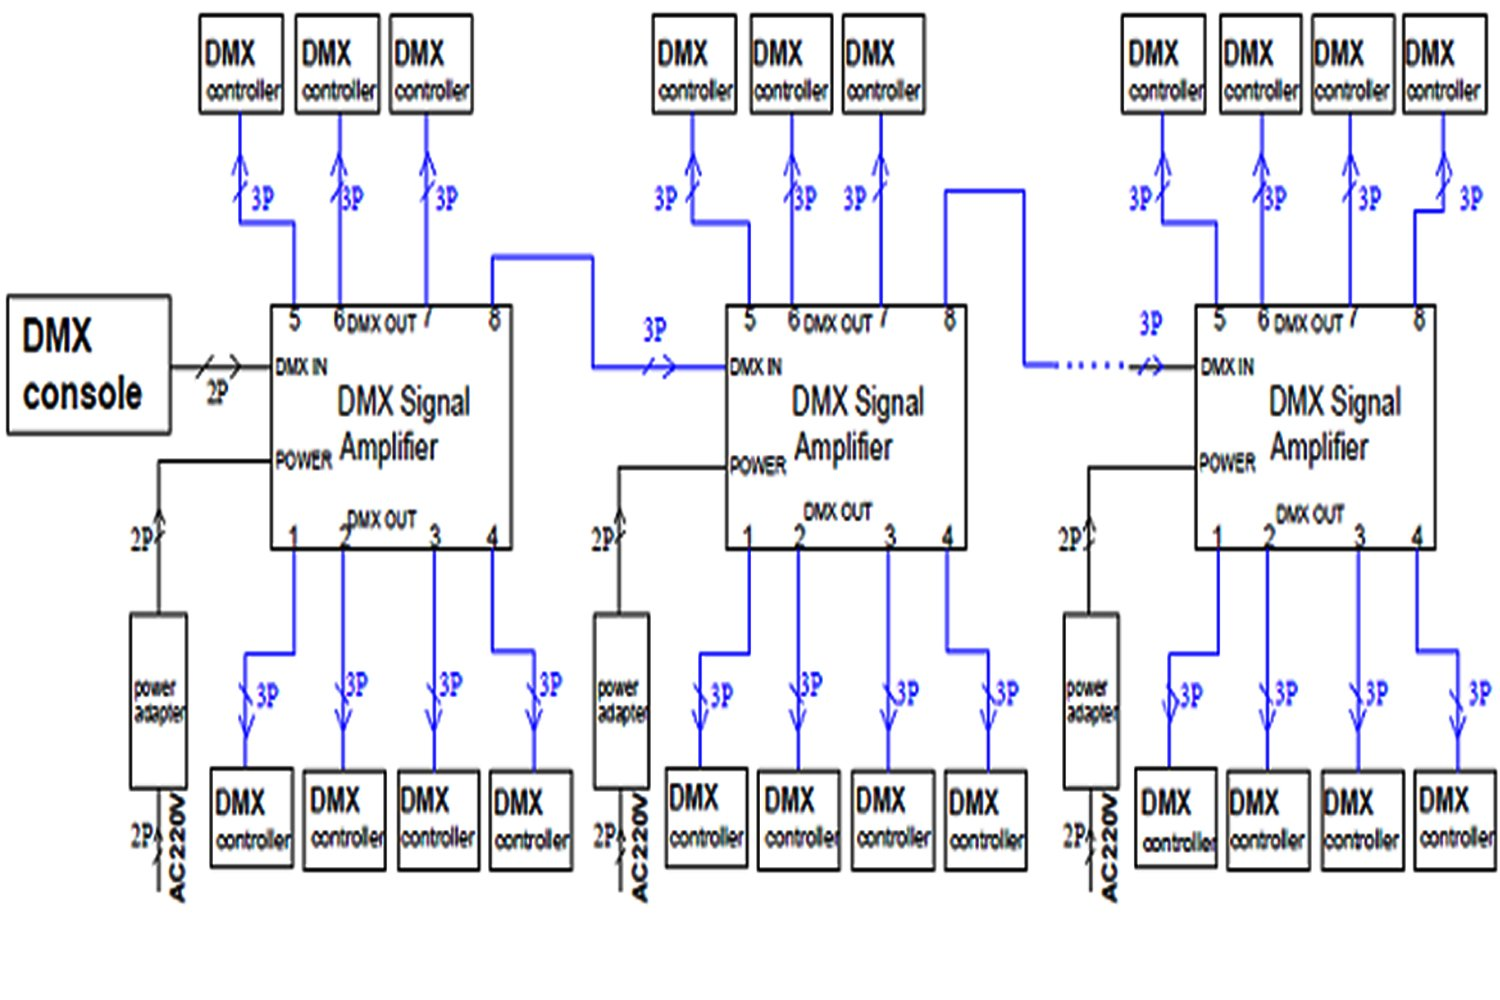 Dmx Daisy Chain Wiring Diagram Best Secret Lighting 1957 Stratocaster Seymour Duncan Can Lights Chaining Receptacle Wire Diagrams